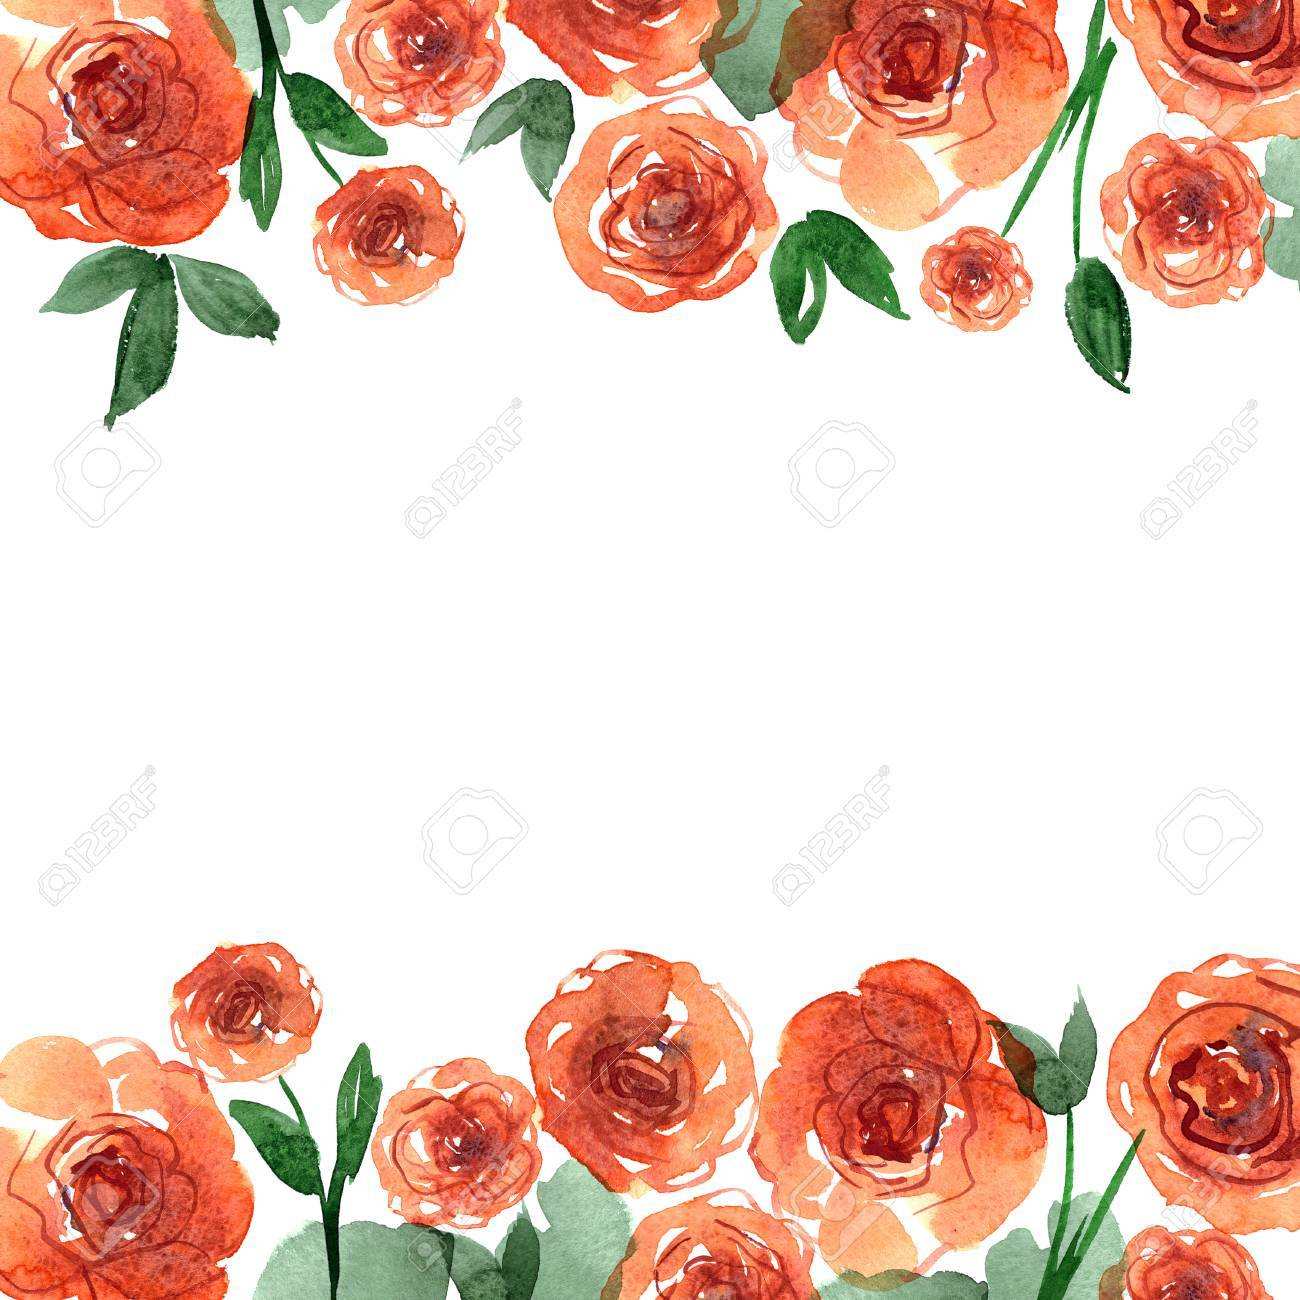 Cute Watercolor Flower Border Background With Orange Roses Invitation Wedding Card